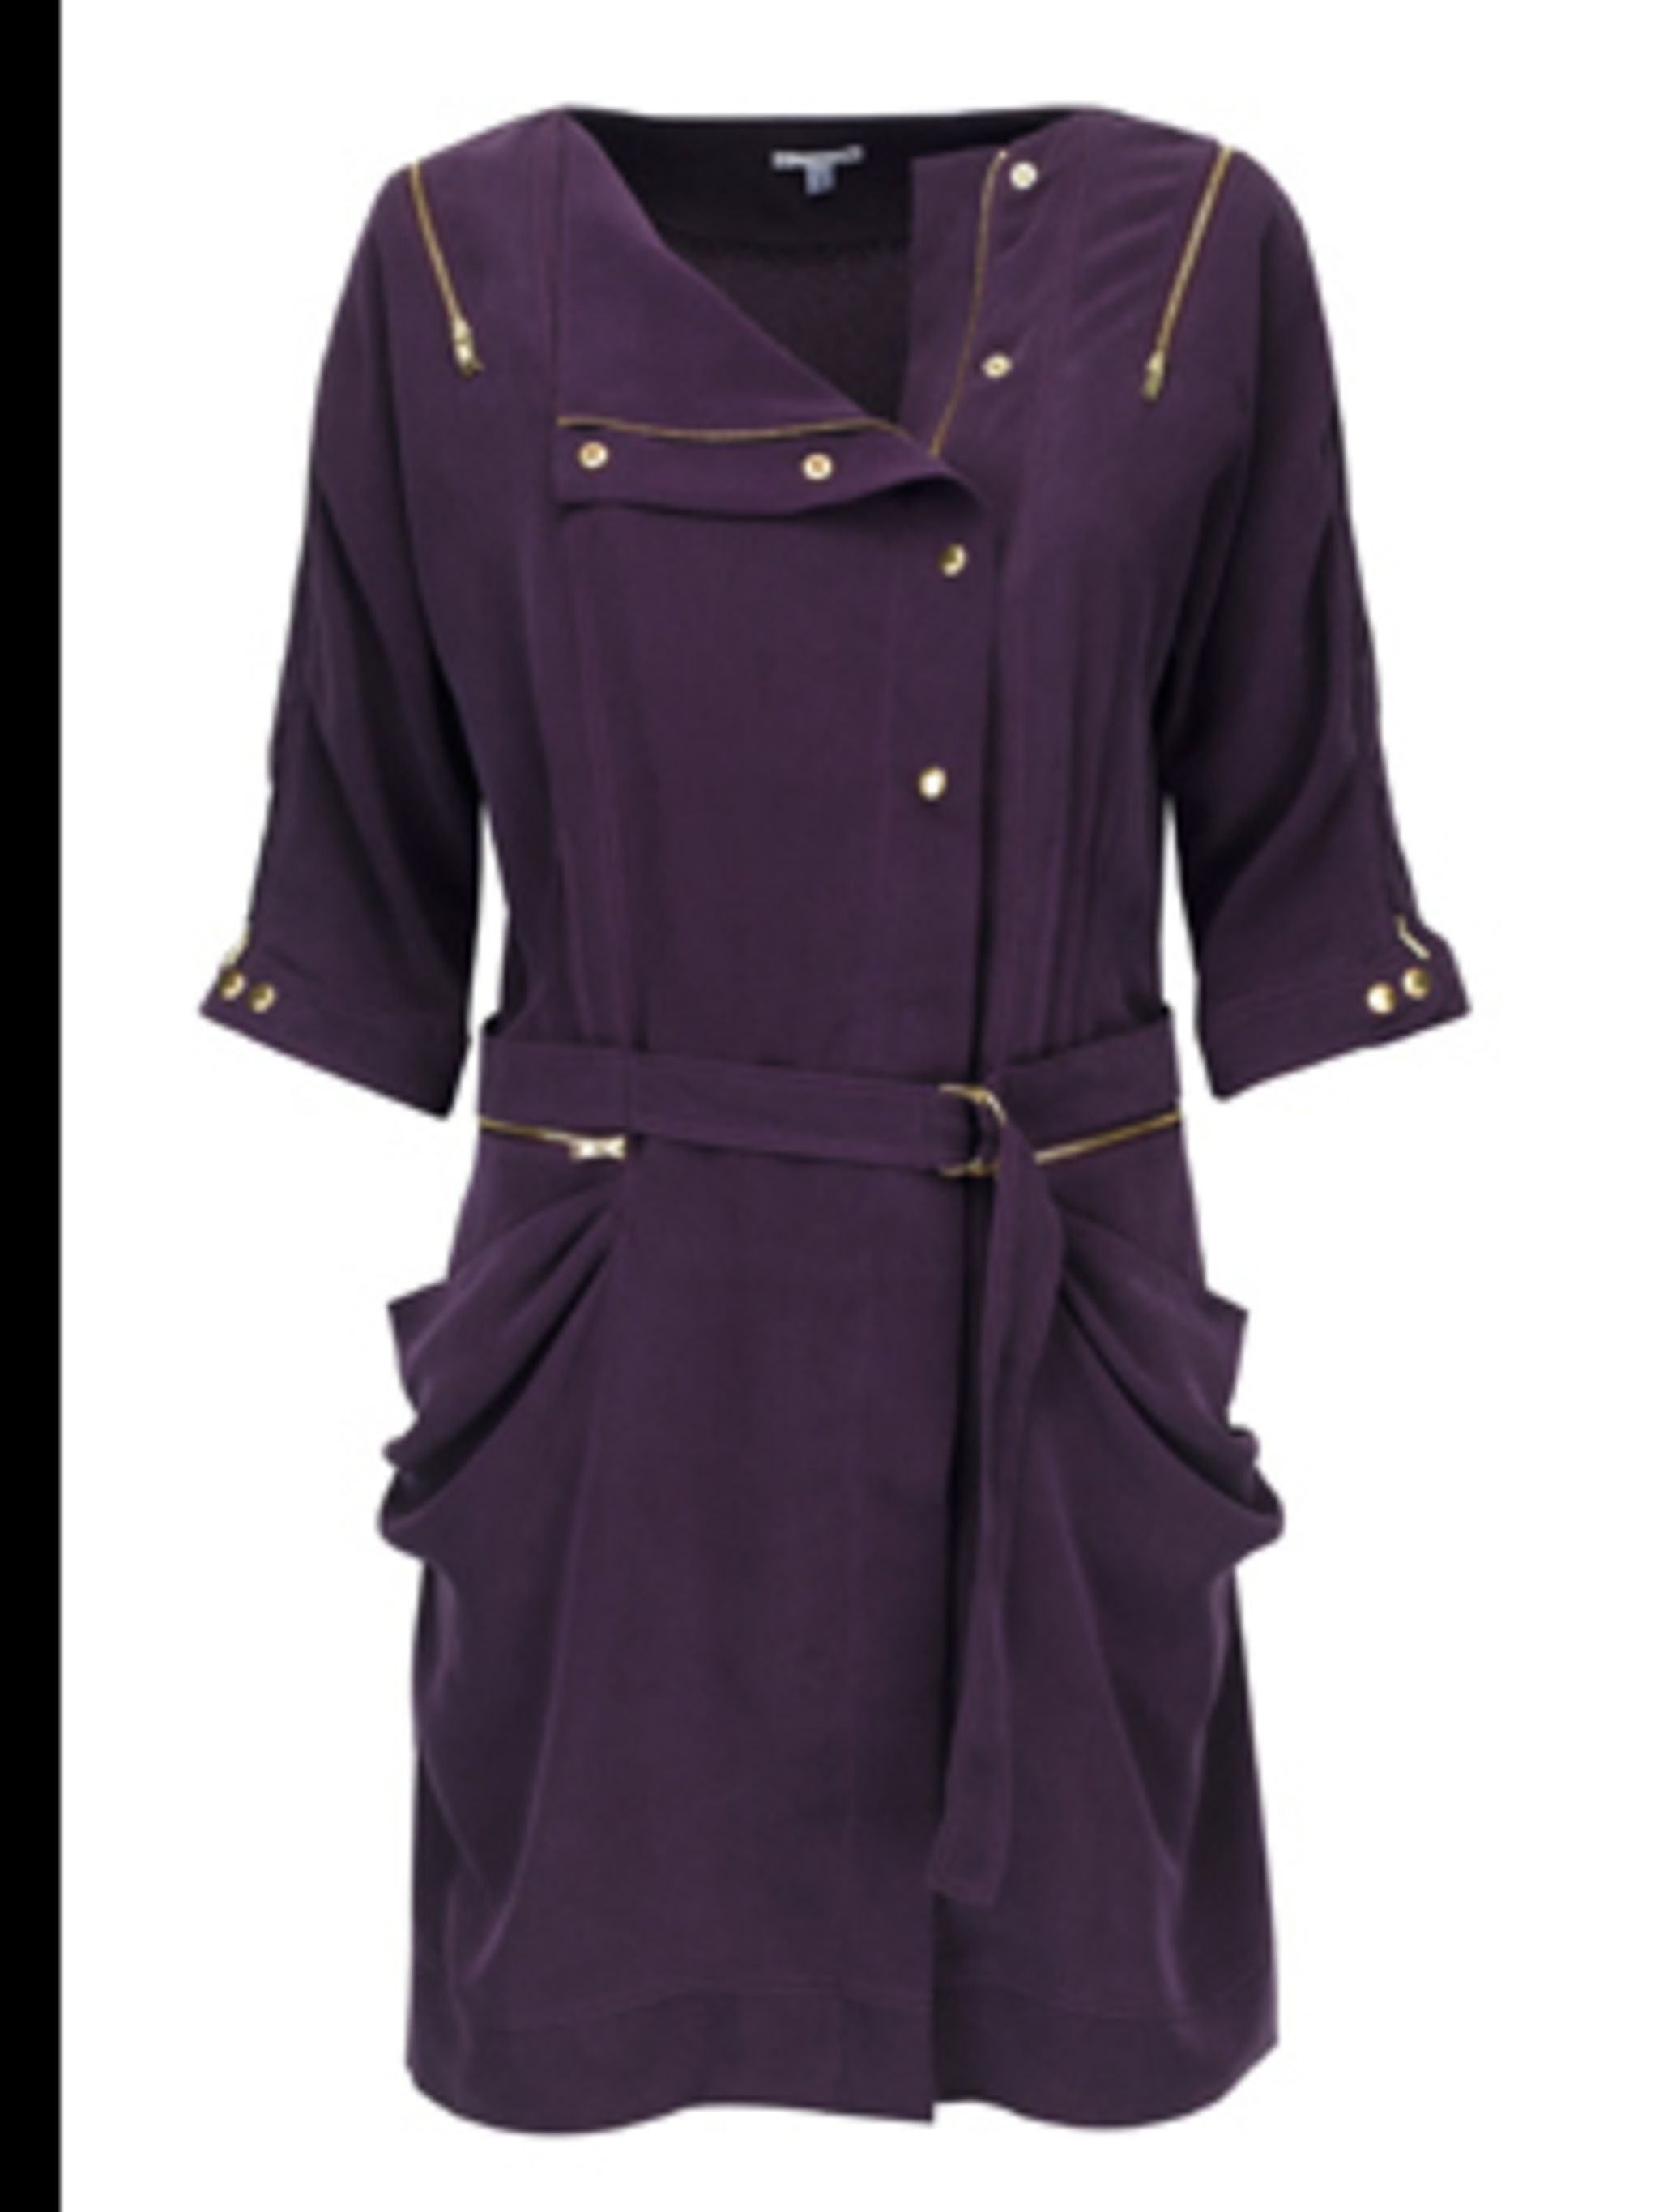 <p>Aubergine trench dress, £59, by Marks & Spencer. For Stockists call 0845 302 1234.</p>